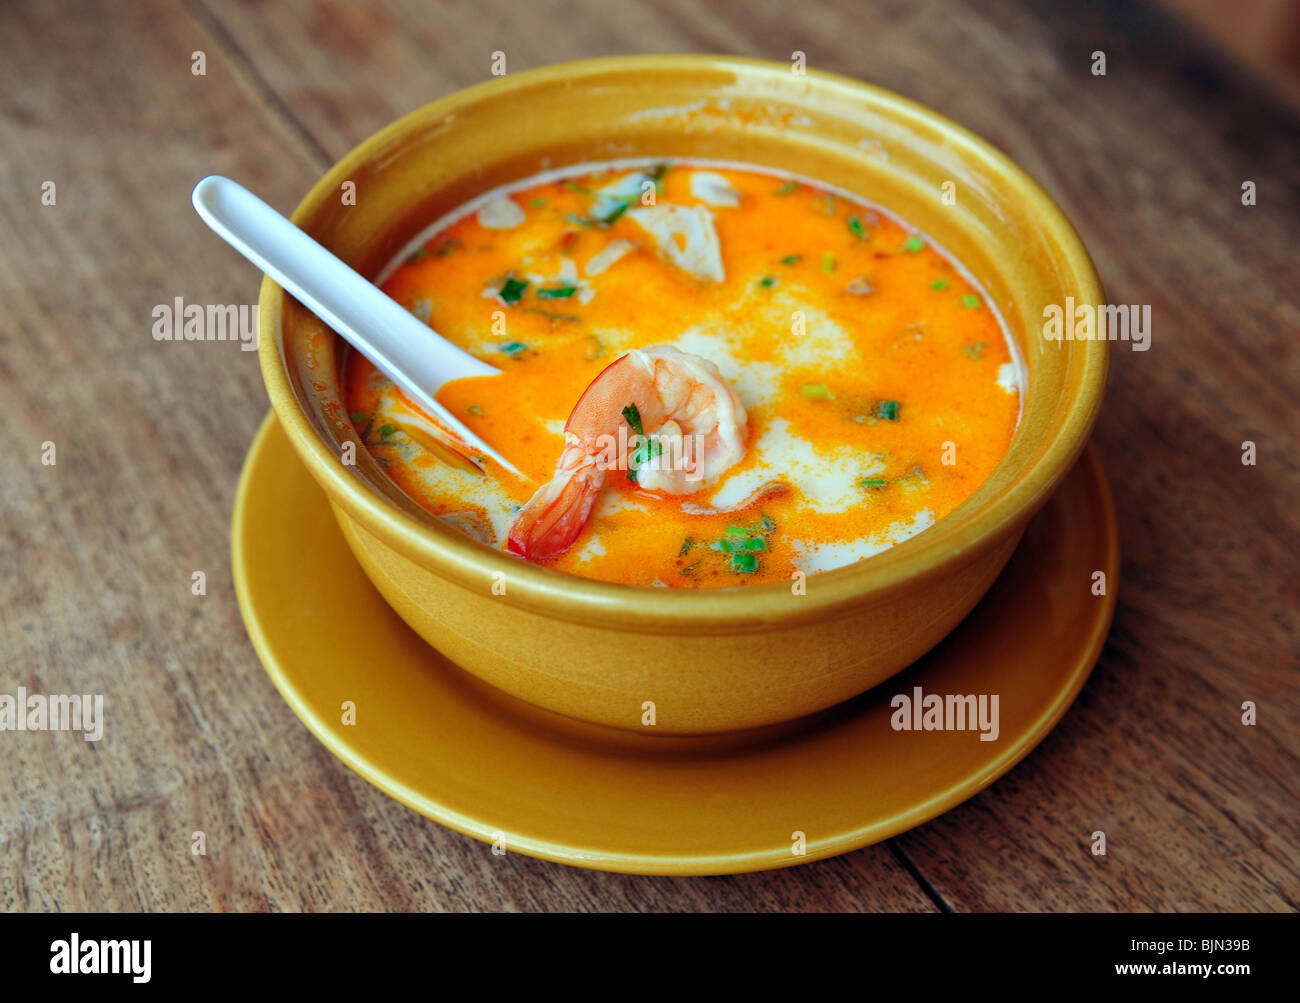 Bowl of spicy Thai Tom Yum Soup - Stock Image